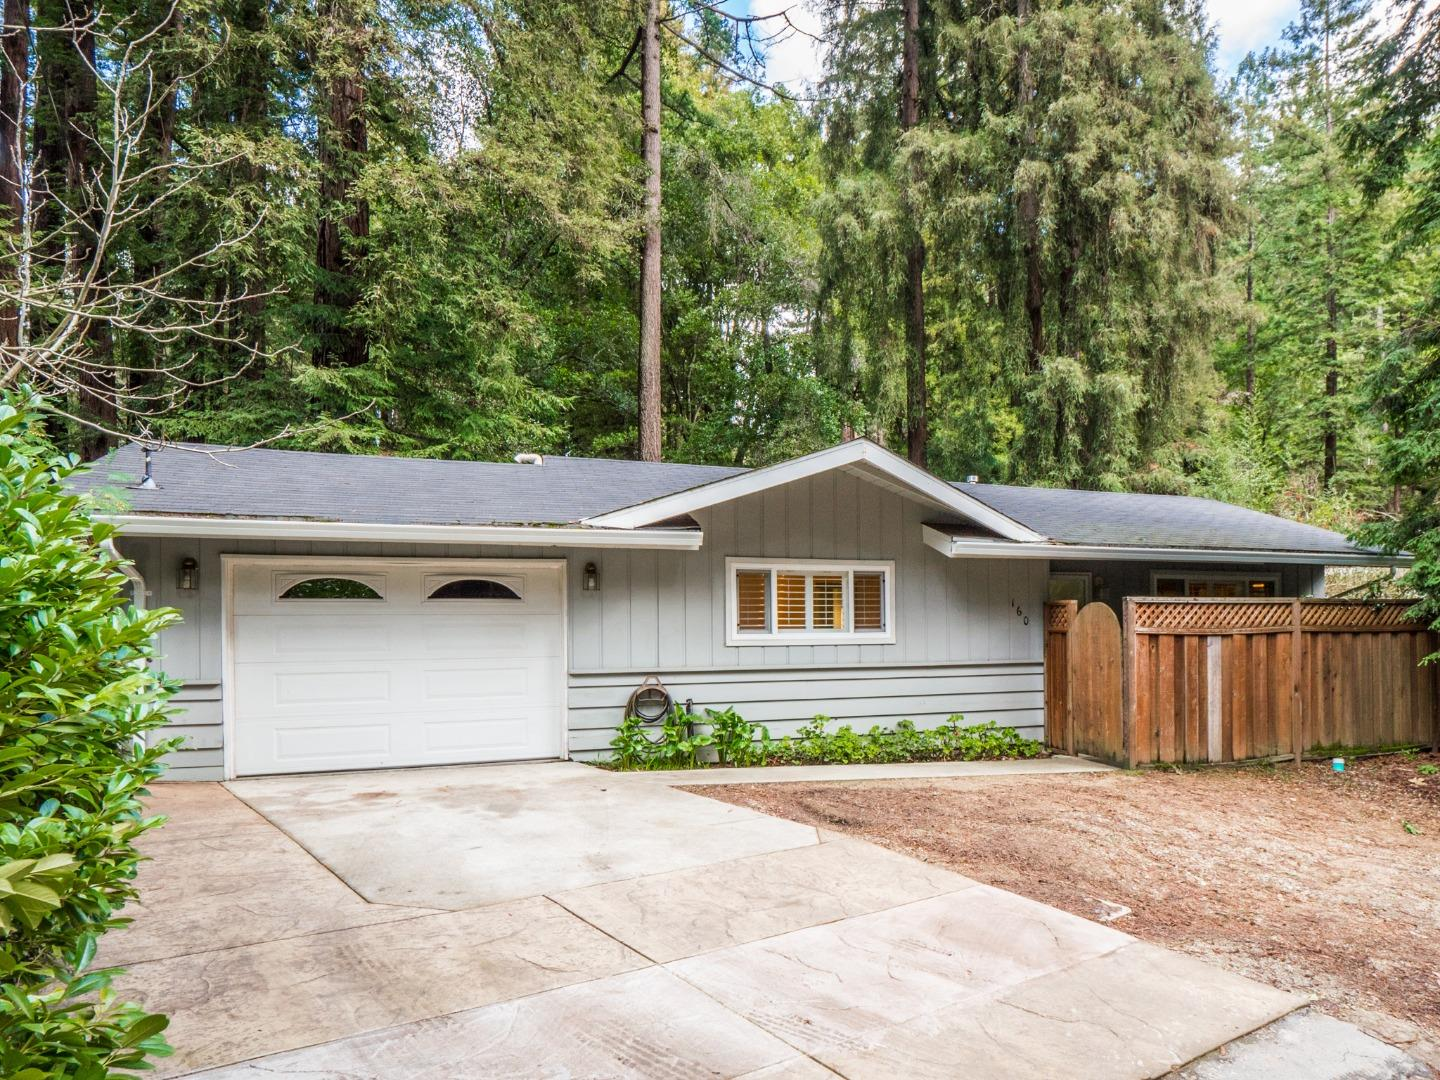 Great opportunity for a starter home or investor!  This sweet 2 bedroom, 1 bath home with 1089 square feet plus garage is charming and move-in ready! Hardwood floors,  dual pane windows, central heat, wood stove in living room. Nice floor plan with ample-sized bedrooms.  Bright and cheerful, with deck in back and room for enjoying a bit of gardening with beautiful mountain and river views.  Lives like a 3  bedroom, or 2 bedrooms plus a separate family room.  Just two miles north of quaint downtown Boulder Creek. A terrific commute location to Los Gatos/San Jose/Silicon Valley.  Easy access to Highway 9. Great San Lorenzo Valley schools.  Don't miss this one!